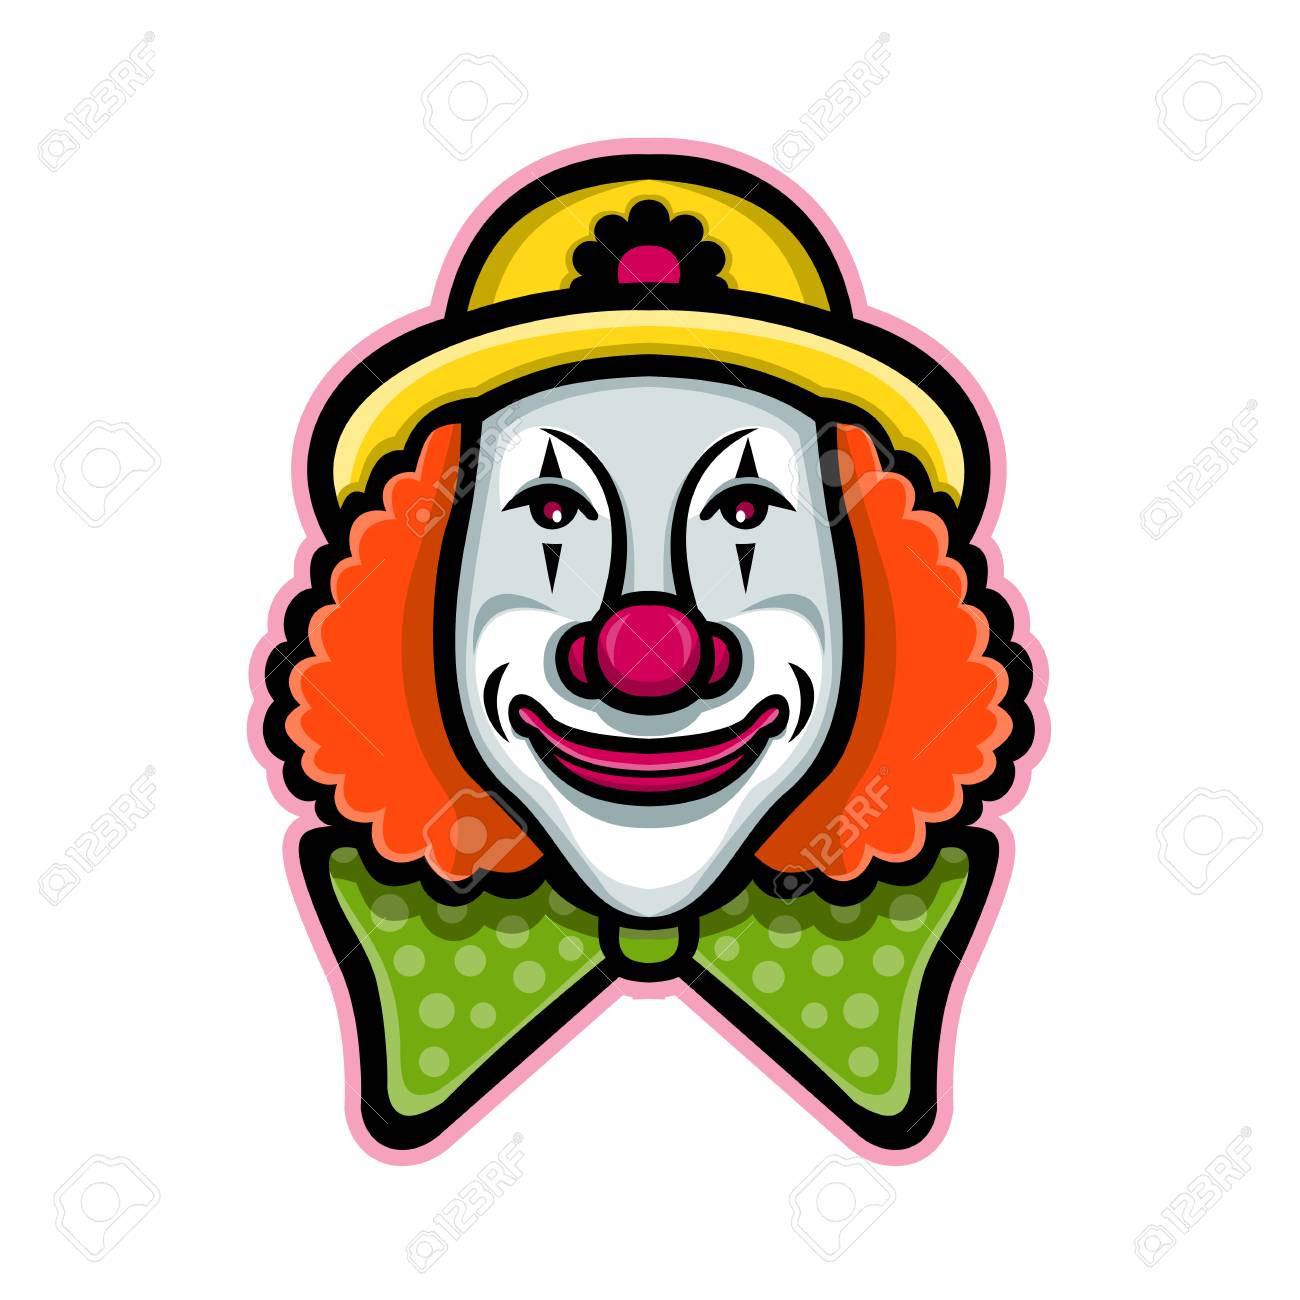 Mascot icon illustration of head of a vintage whiteface circus clown viewed from front on isolated background in retro style. - 102034739